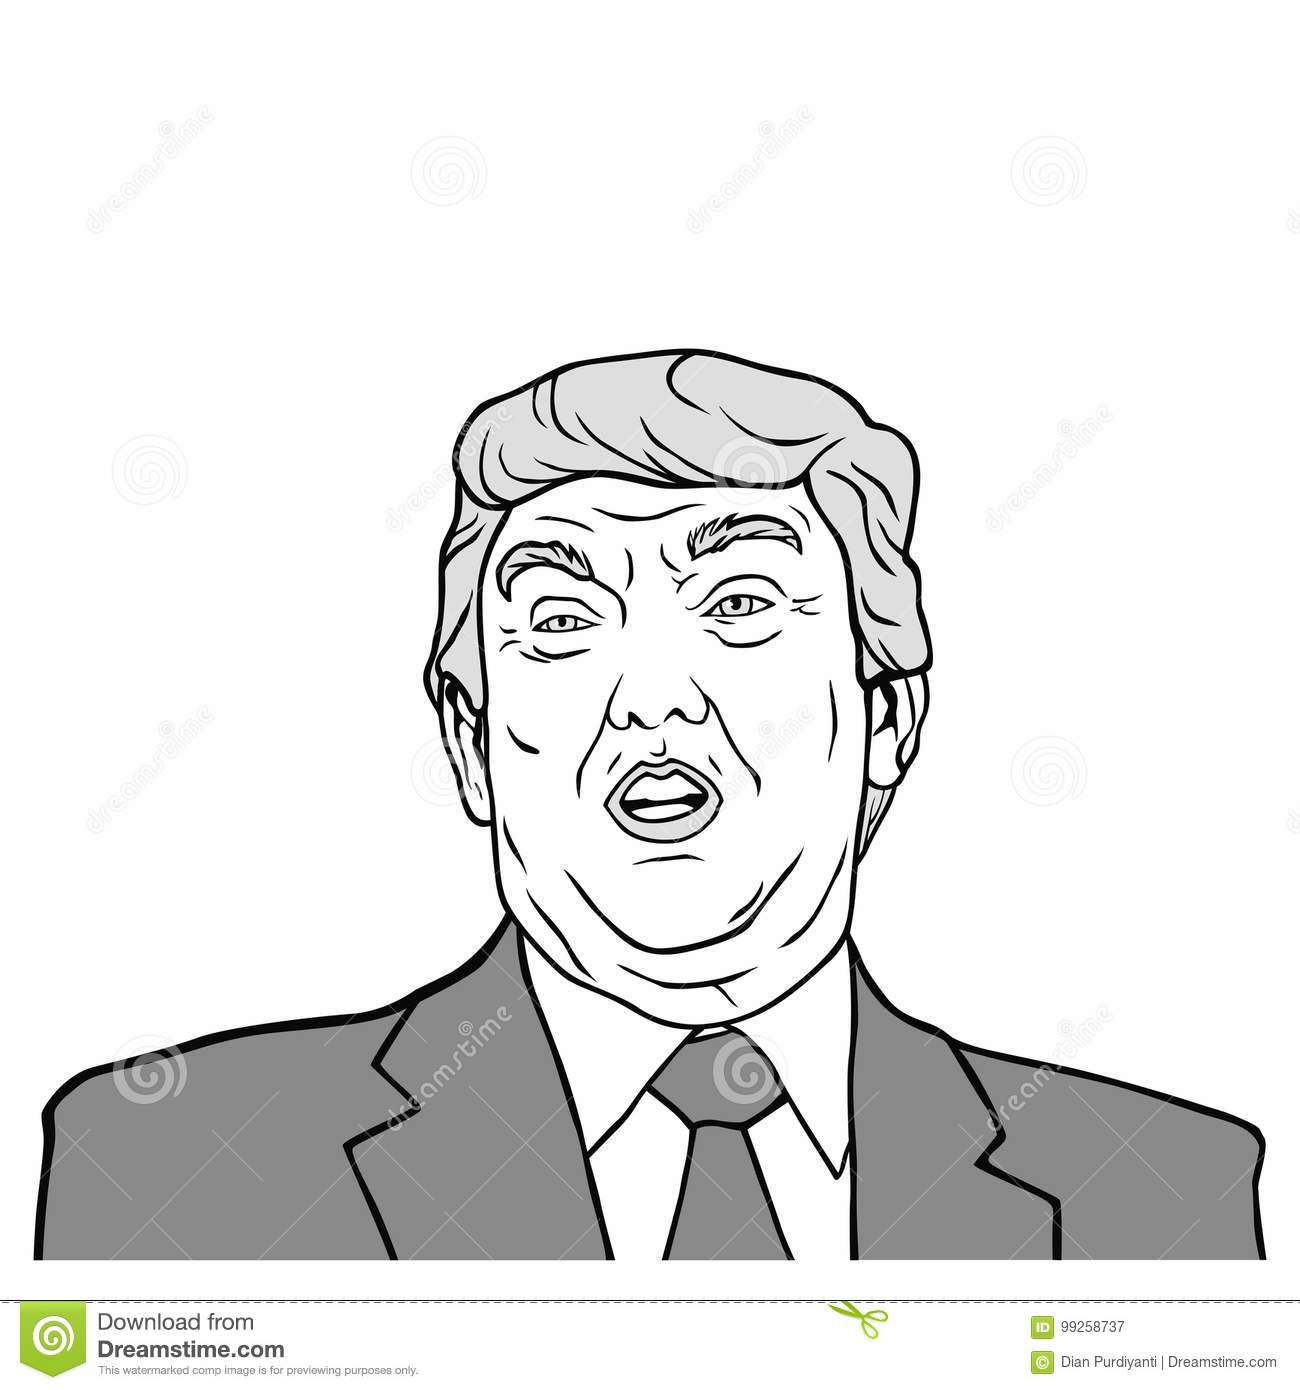 Donald trump 45th president of united states of america black and white vector design